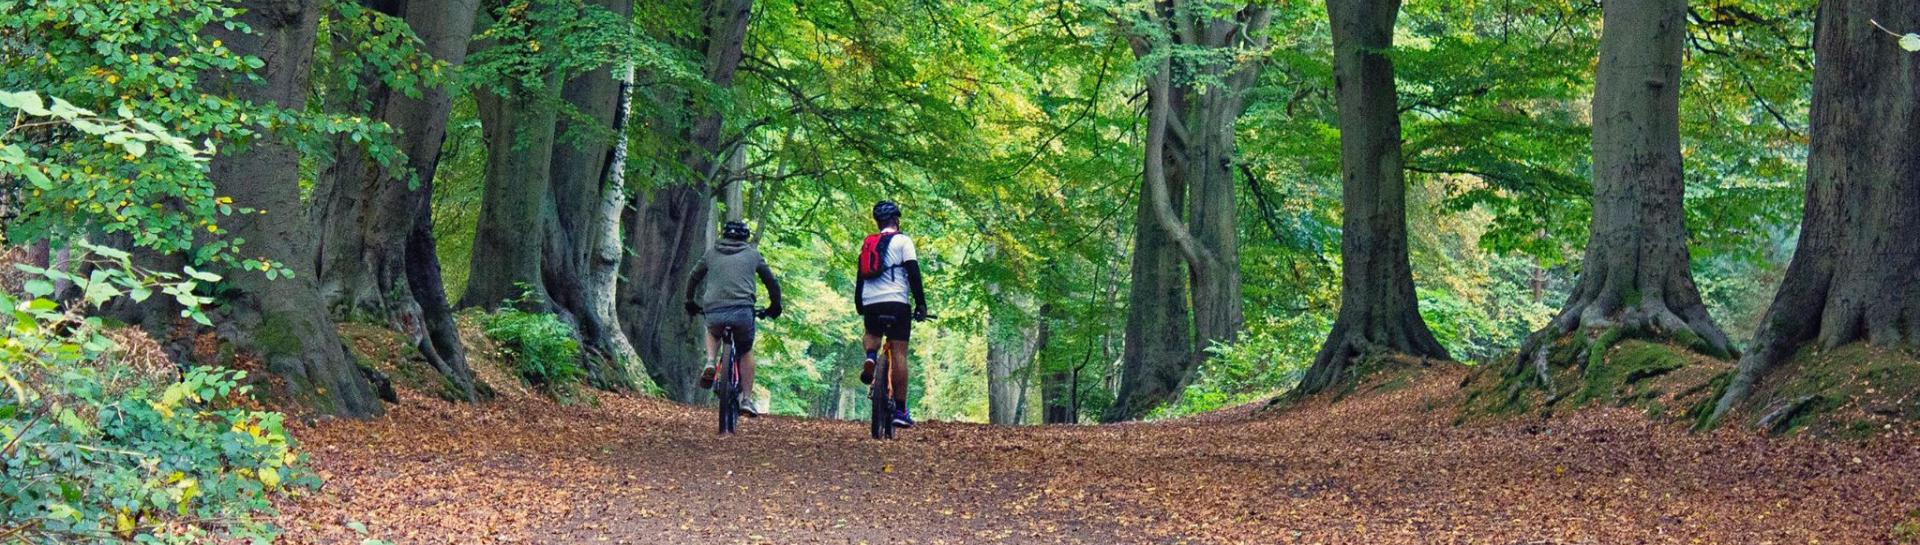 Cycling in Northamptonshire Forest (Harlestone Firs)